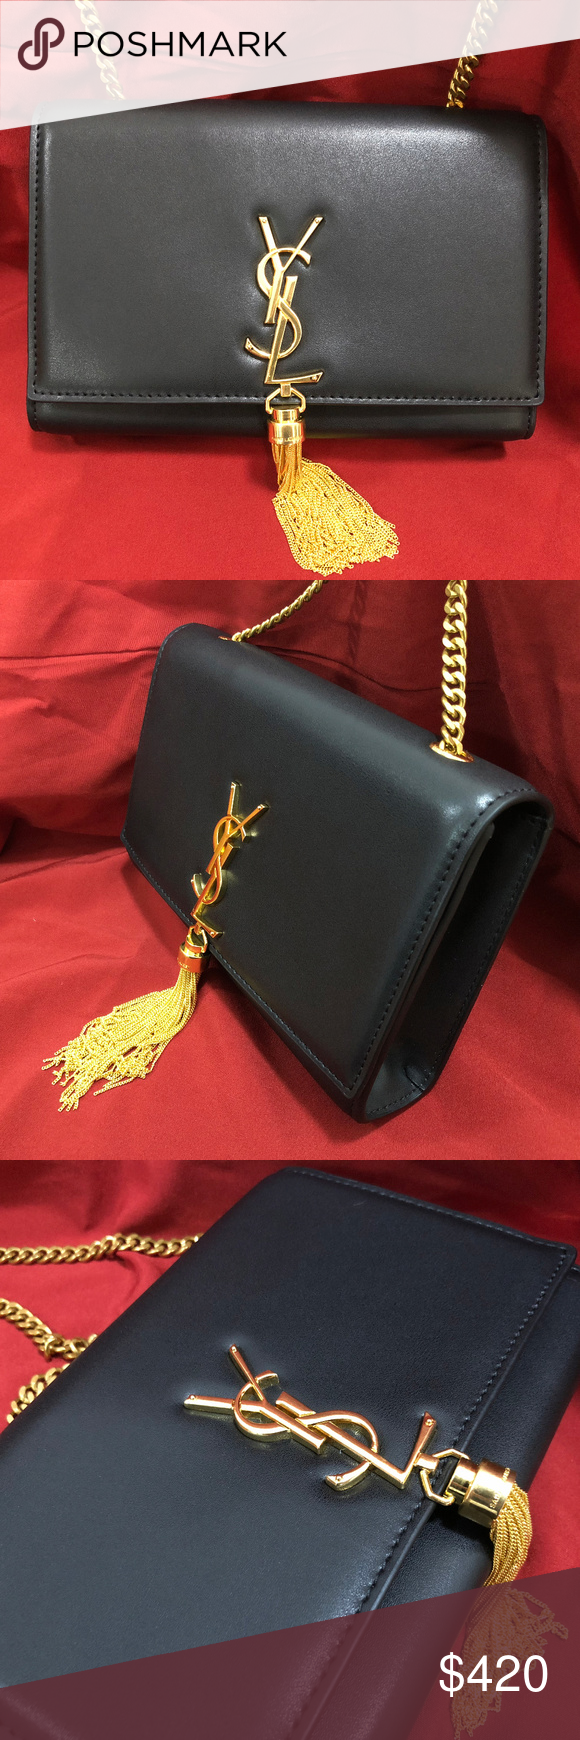 "523822cf32b USED YSL Medium Classic Kate Tassel Black Bag Used Yves Saint Laurent  authentic ""Kate"" shoulder bag. Worn twice, like-new condition. 100%  authentic."